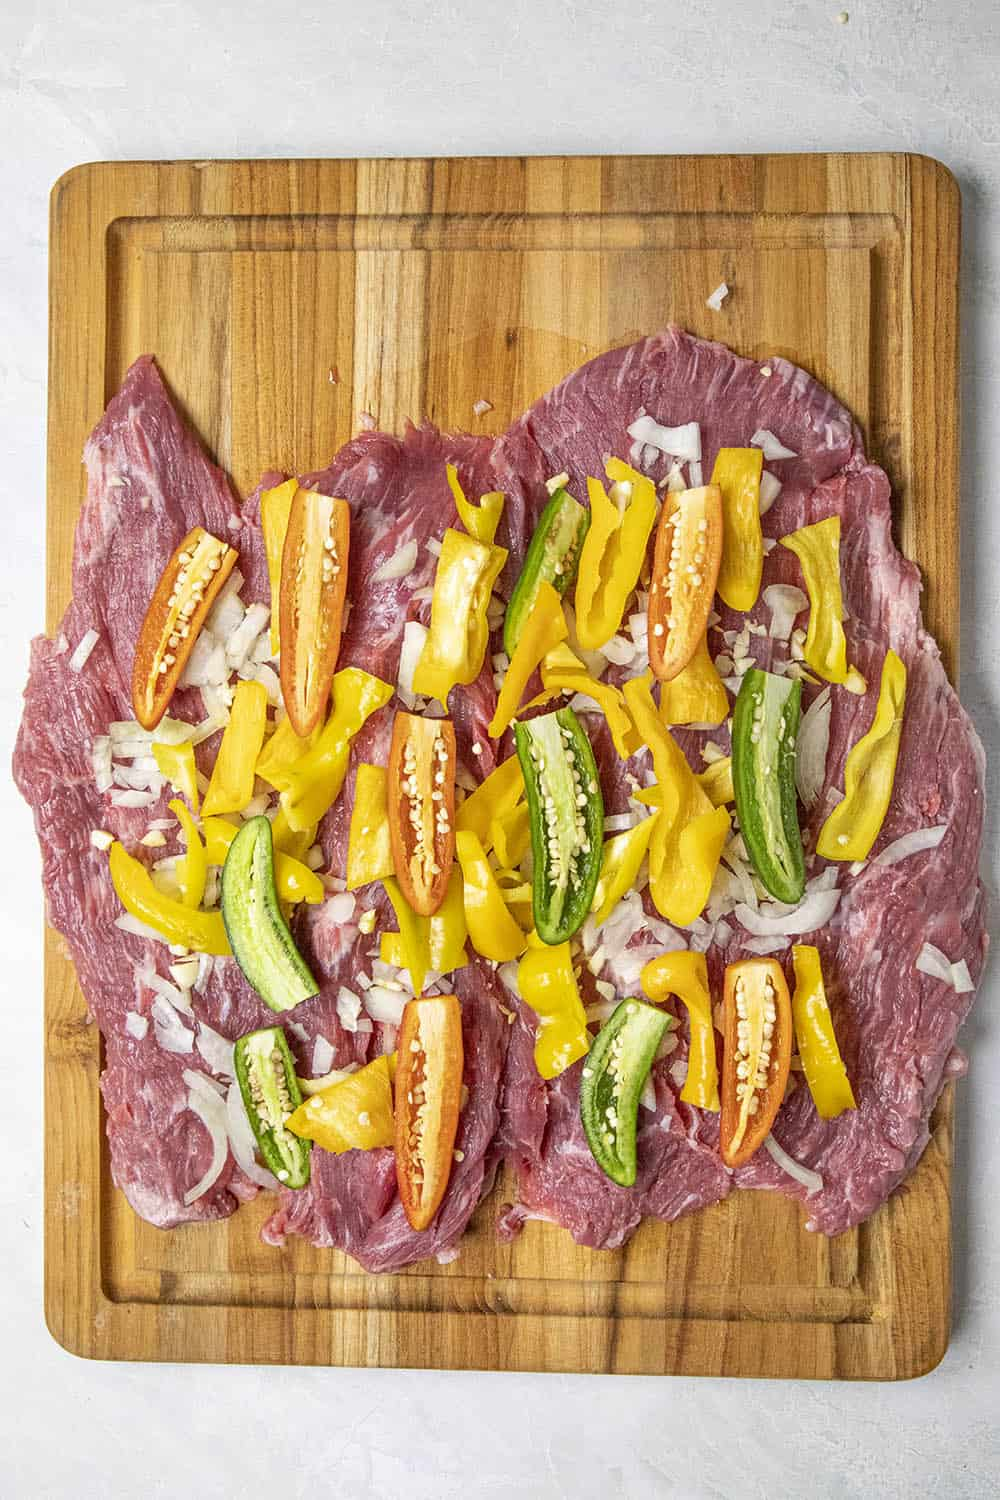 Adding peppers to the flank steak